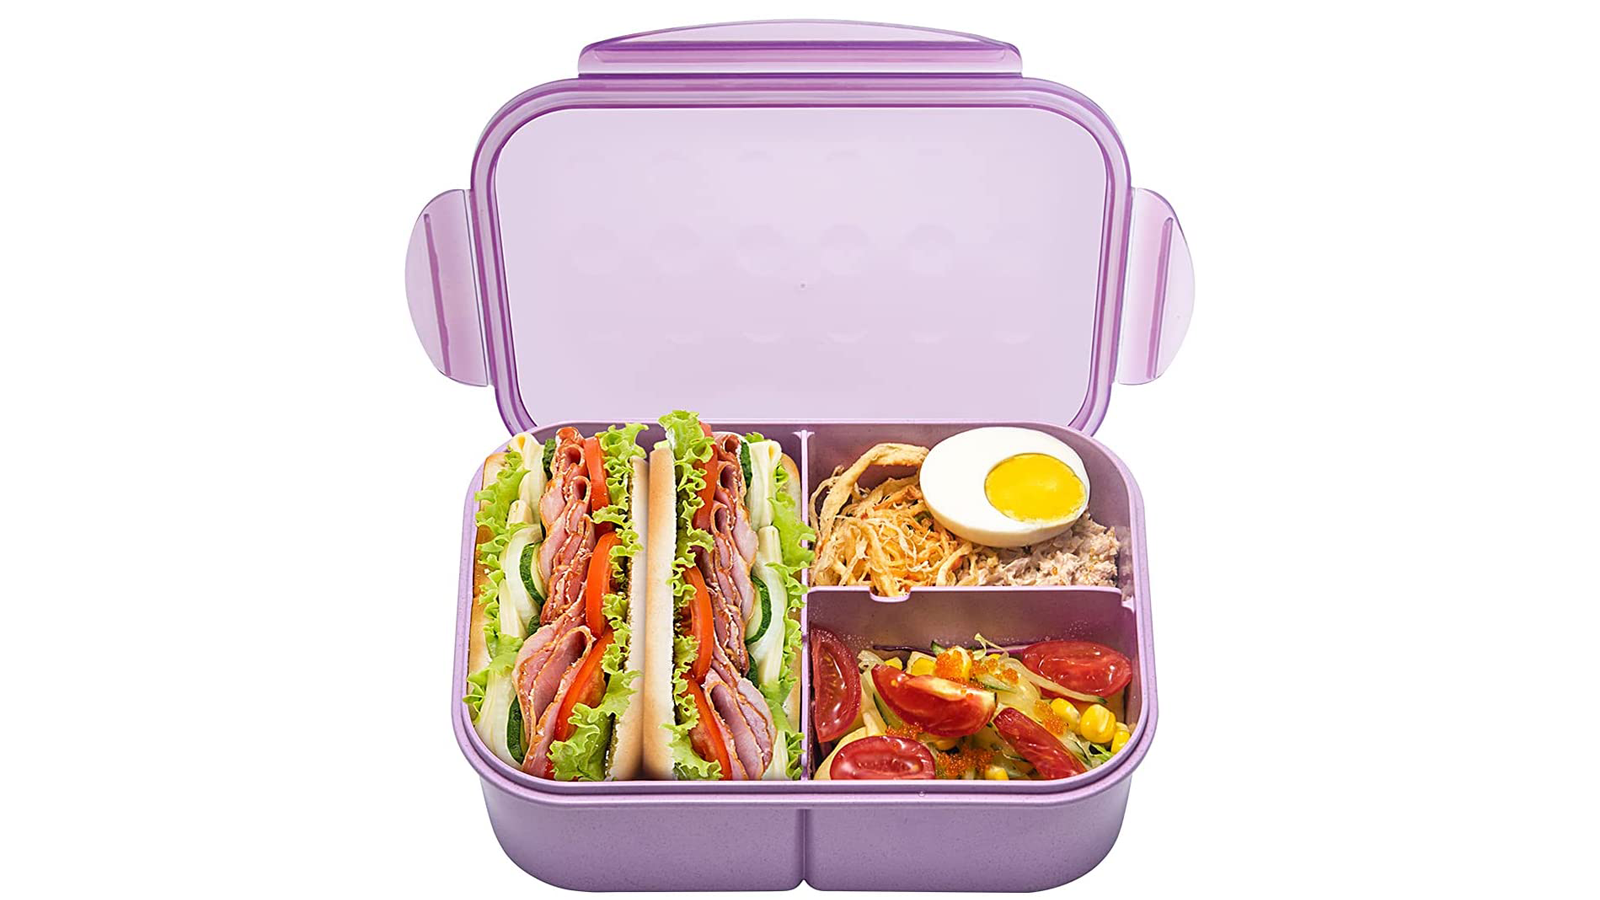 You Can Take Your Lunch on the Go Thanks to This Stylish Bento Box